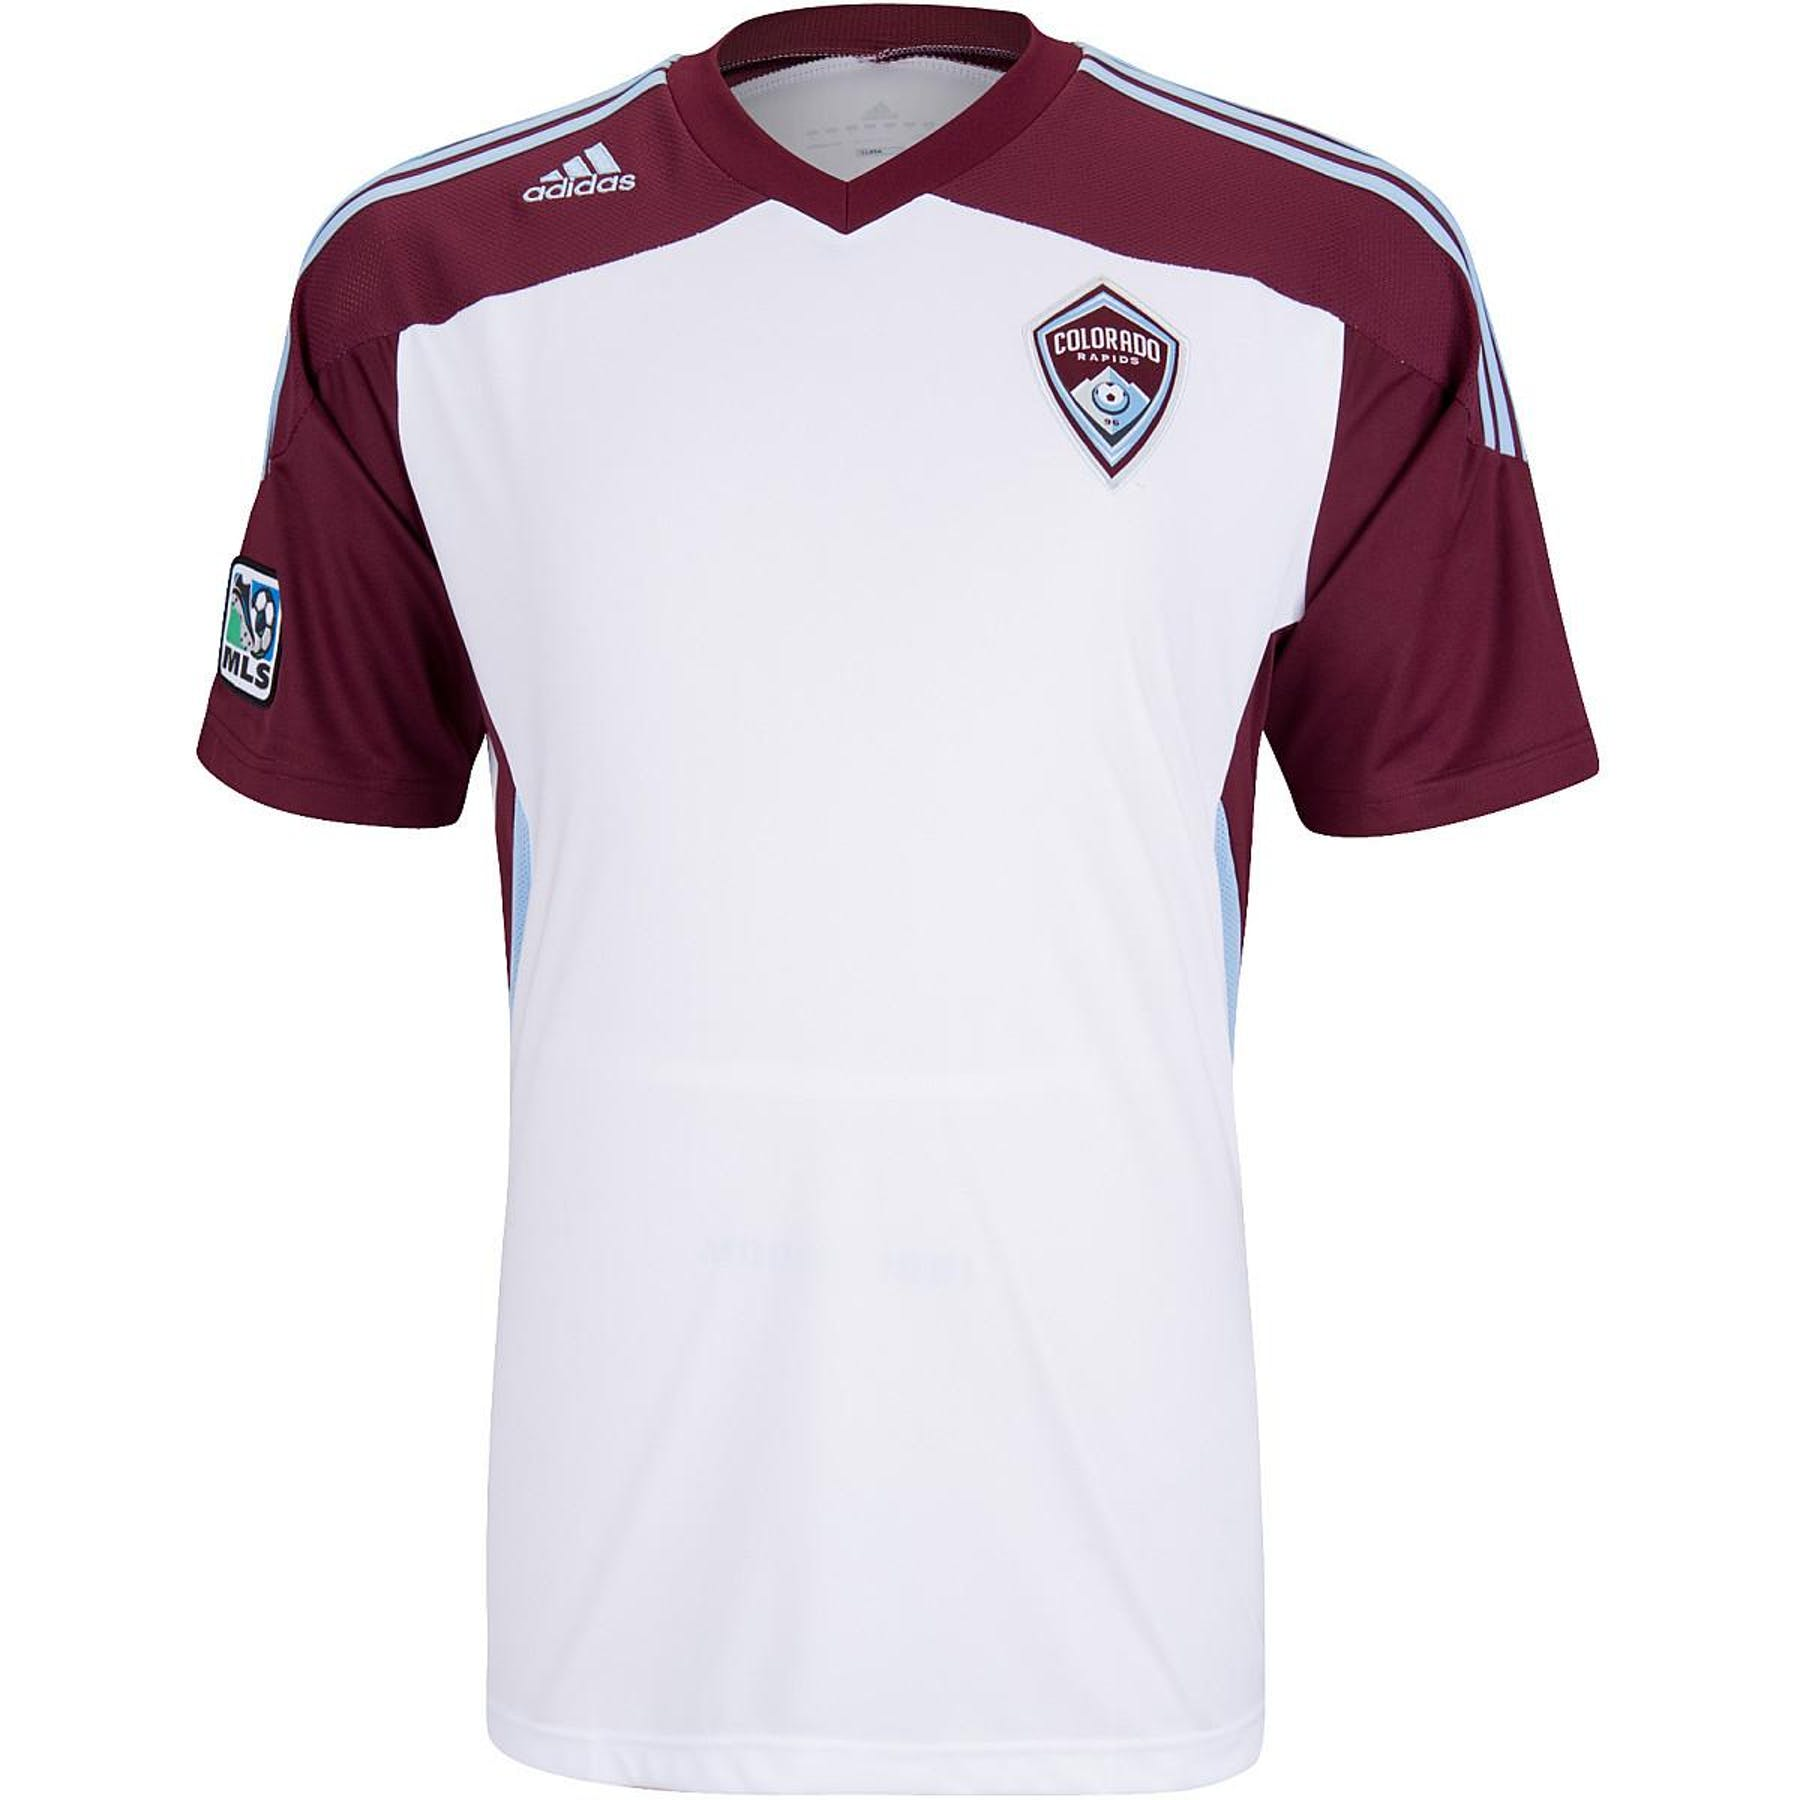 new styles 0dc08 960b9 Colorado Rapids Officially Licensed Apparel Liquidation - 70+ Items,  $6,600+ SRP!